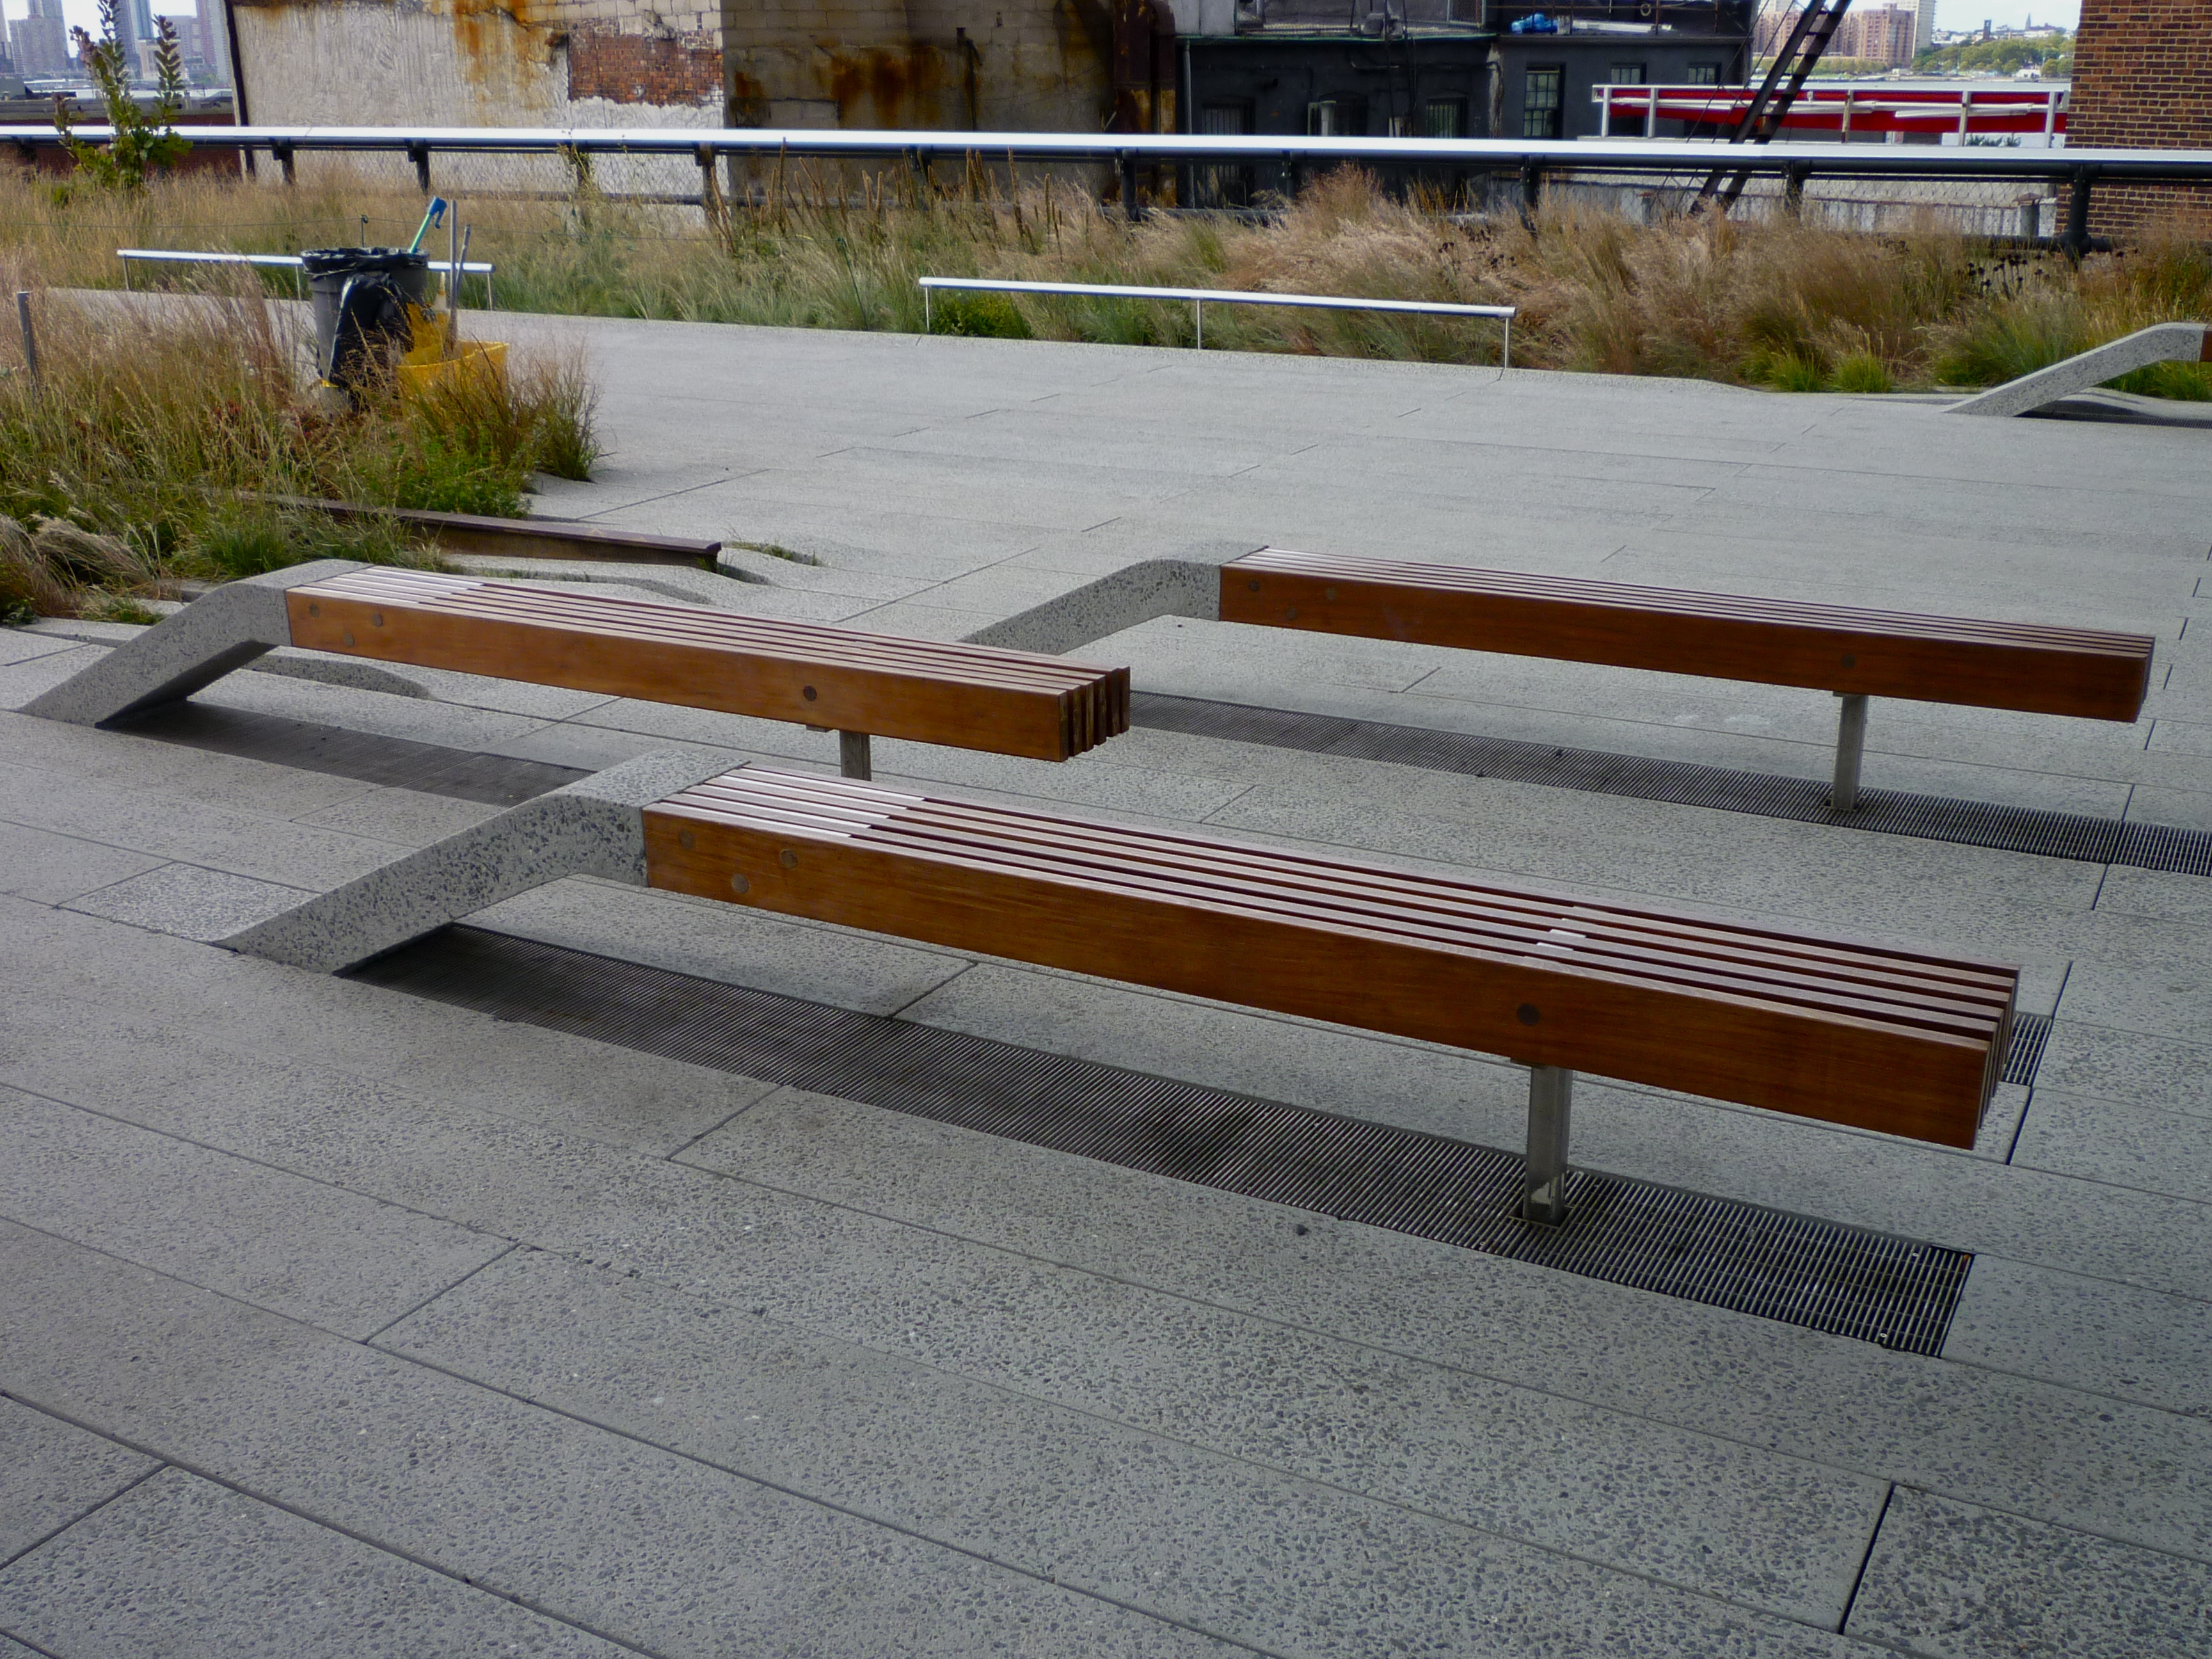 File:Highline benches (3959122221) - Wikimedia Commons